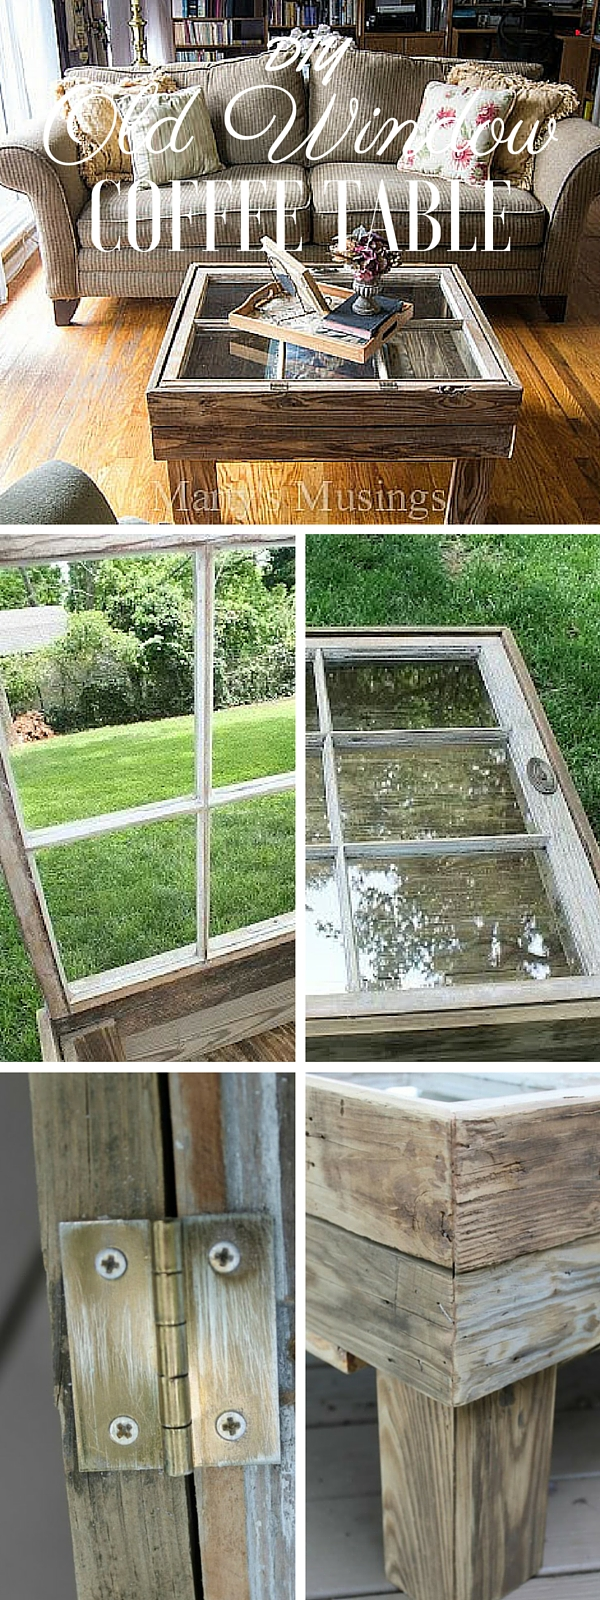 Check out the tutorial: #DIY Repurposed Window Coffee Table